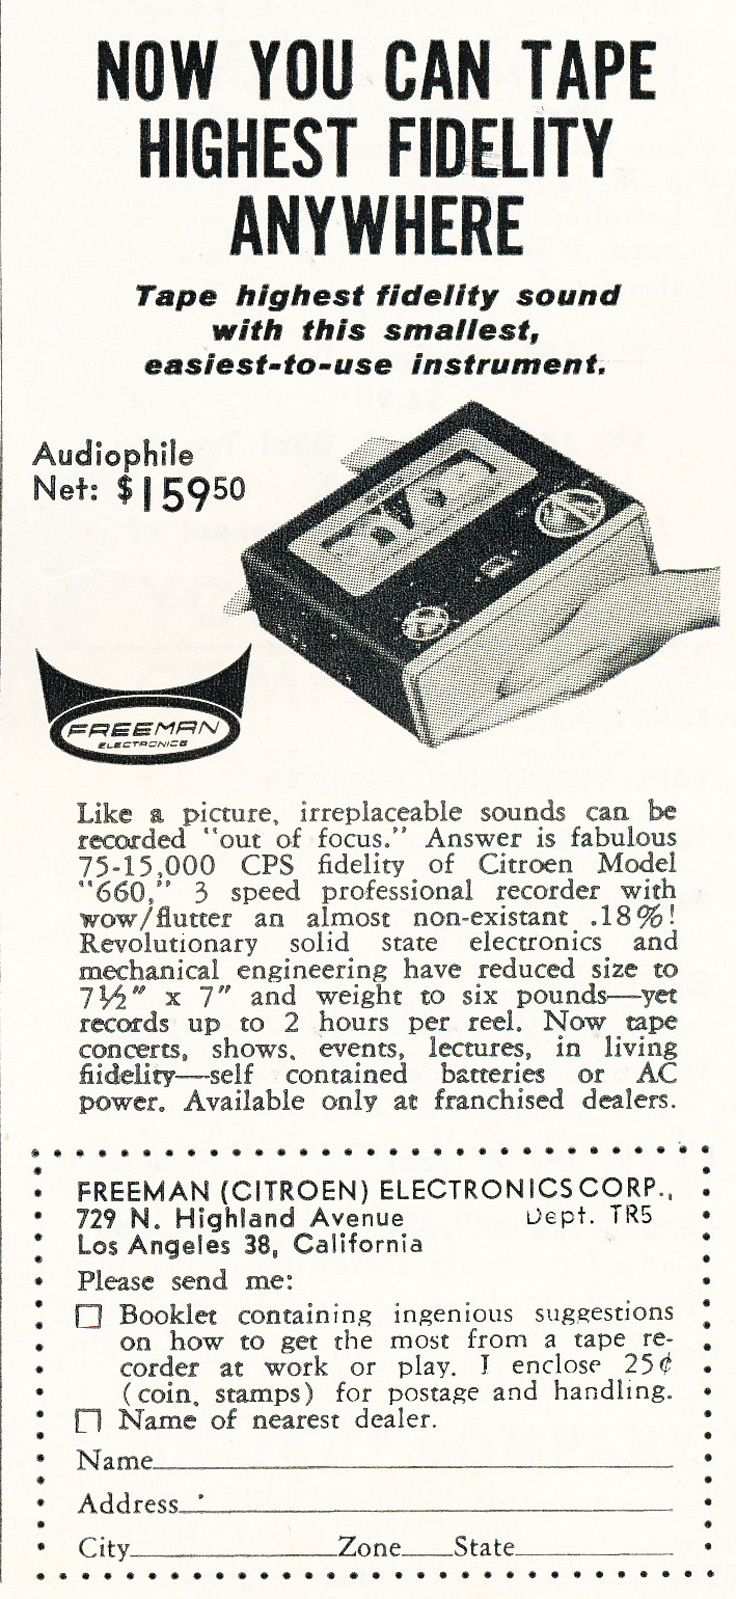 1963 ad for Freeman reel to reel tape recorder in Reel2ReelTexas.com's vintage recording collection